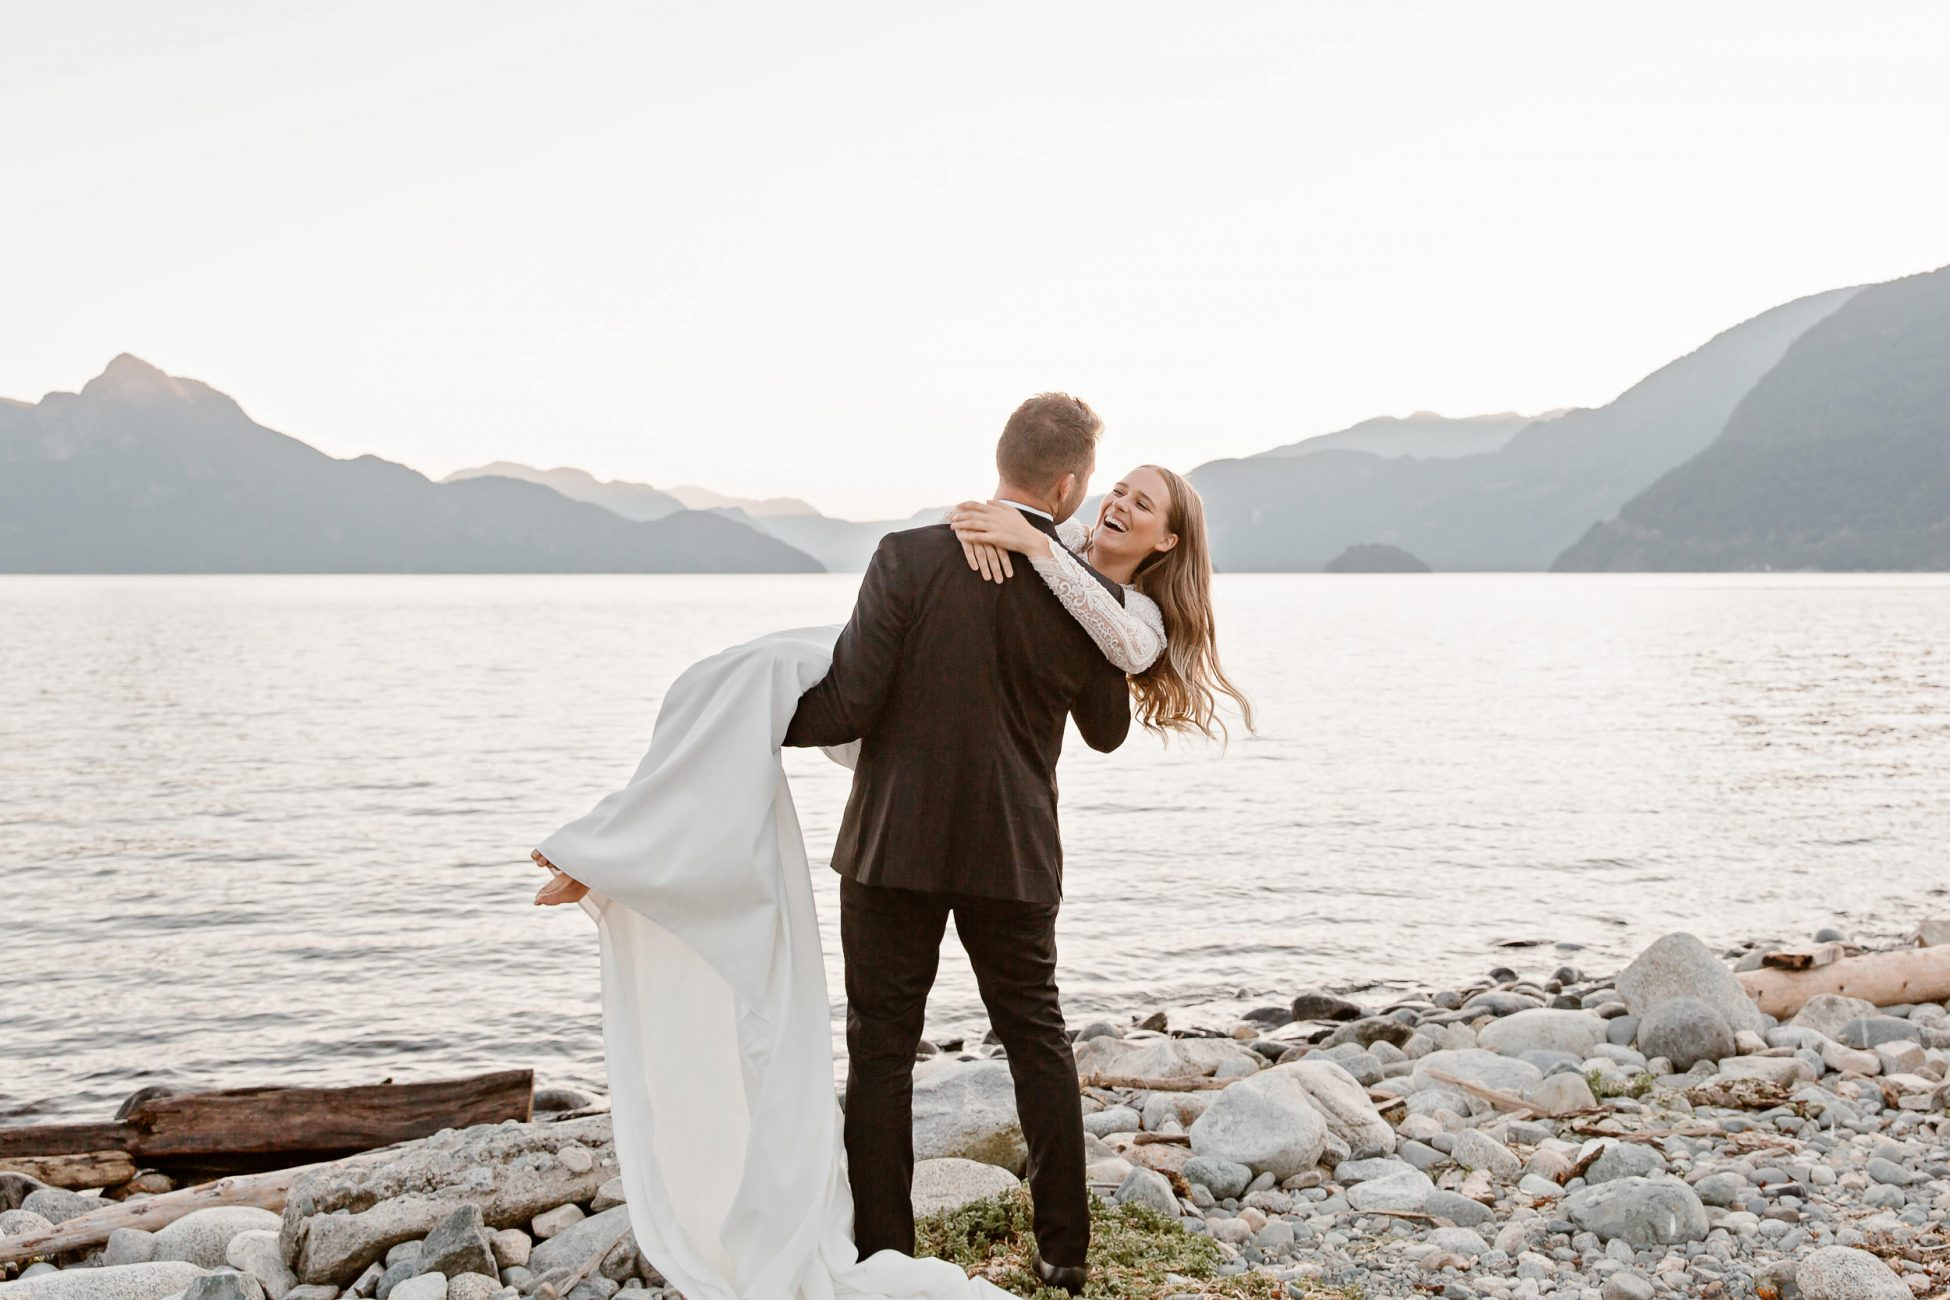 Groom in a black suit is holding a bride in his hands on a west coast beach with a mountain views